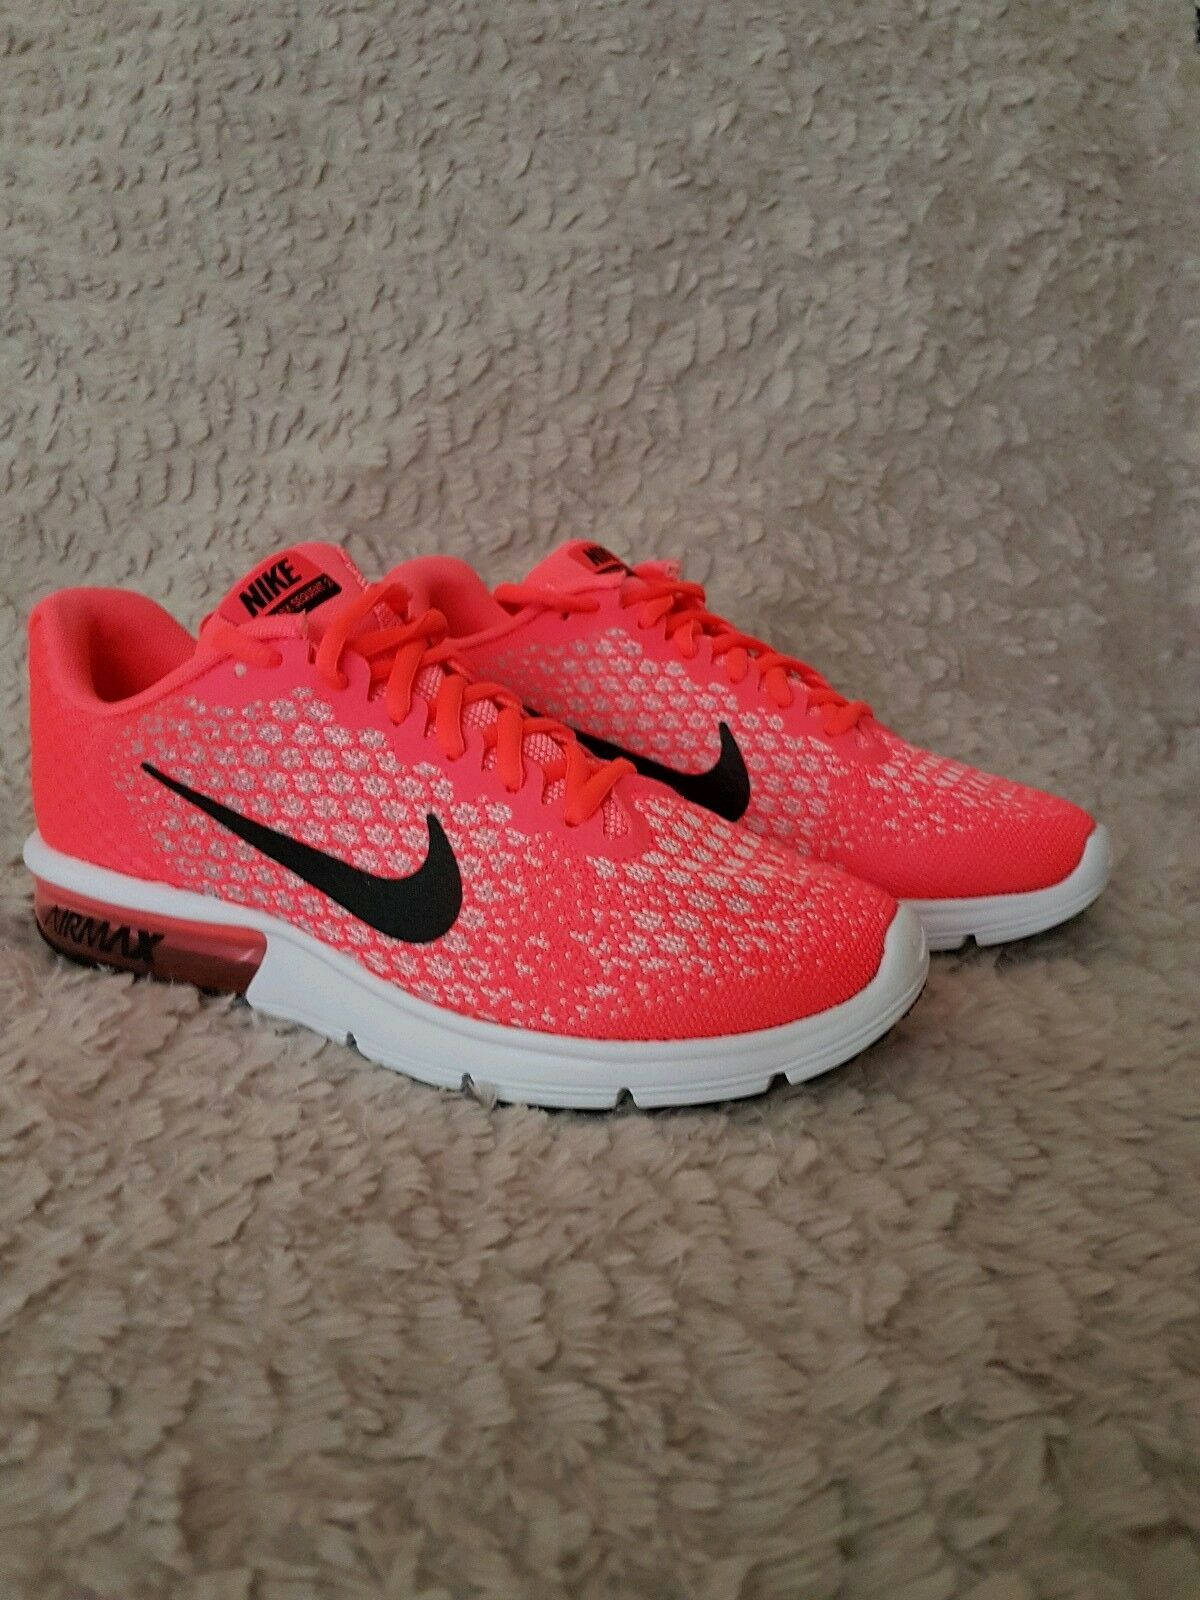 nike air max entraînent la taille flambant neuf coral formateurs coral neuf rose 2a03fb